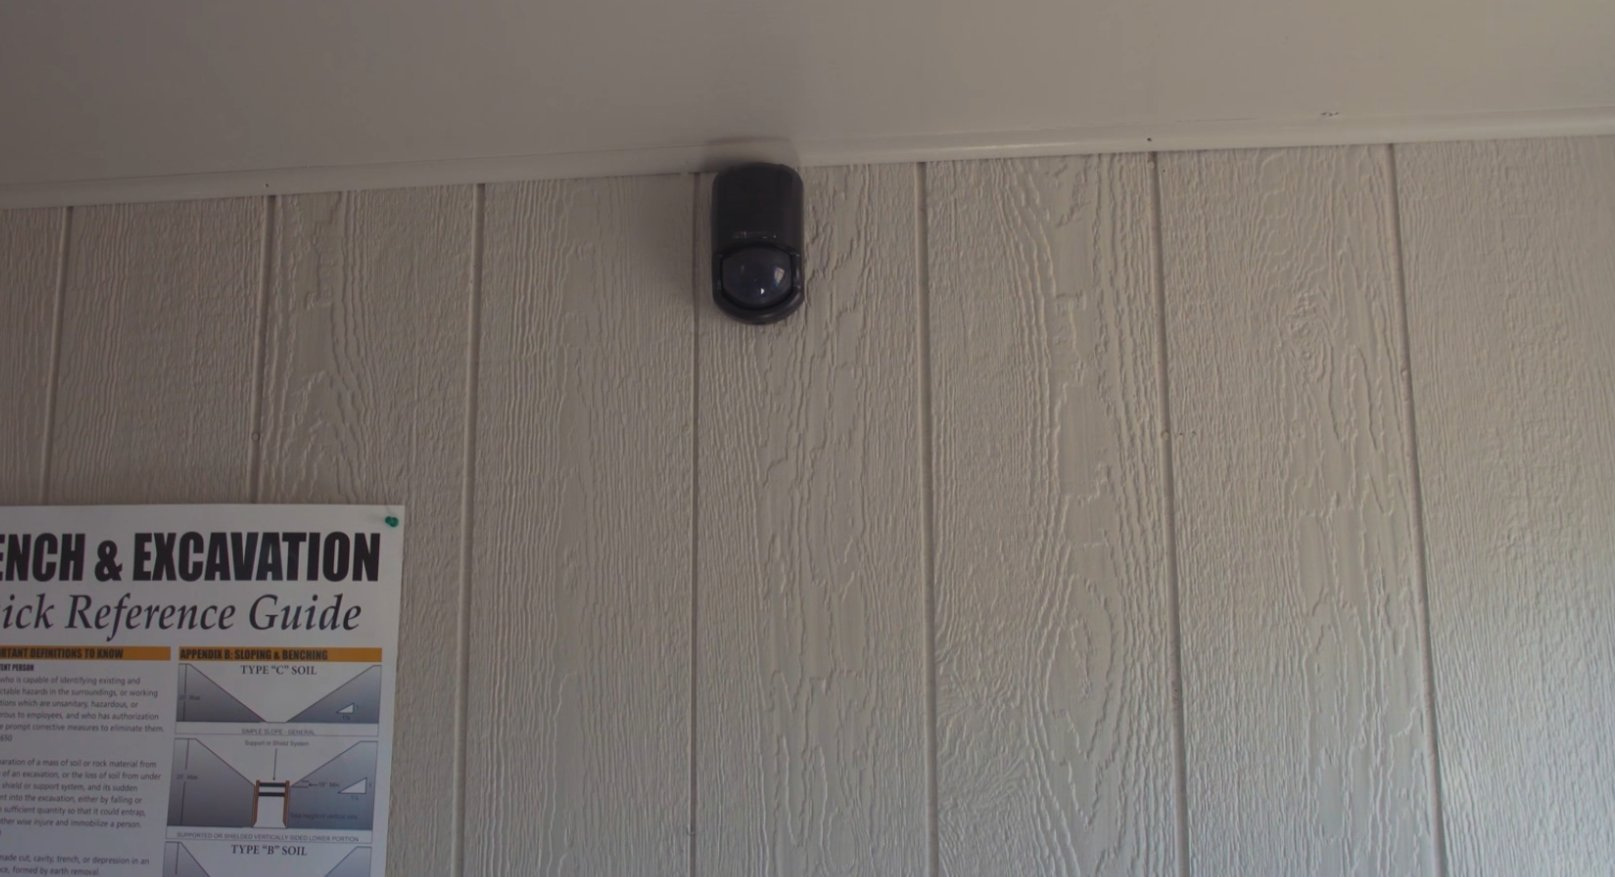 DS610 Trailer Motion Sensor (works only with DS600) by MOBILELOCK (Image #5)